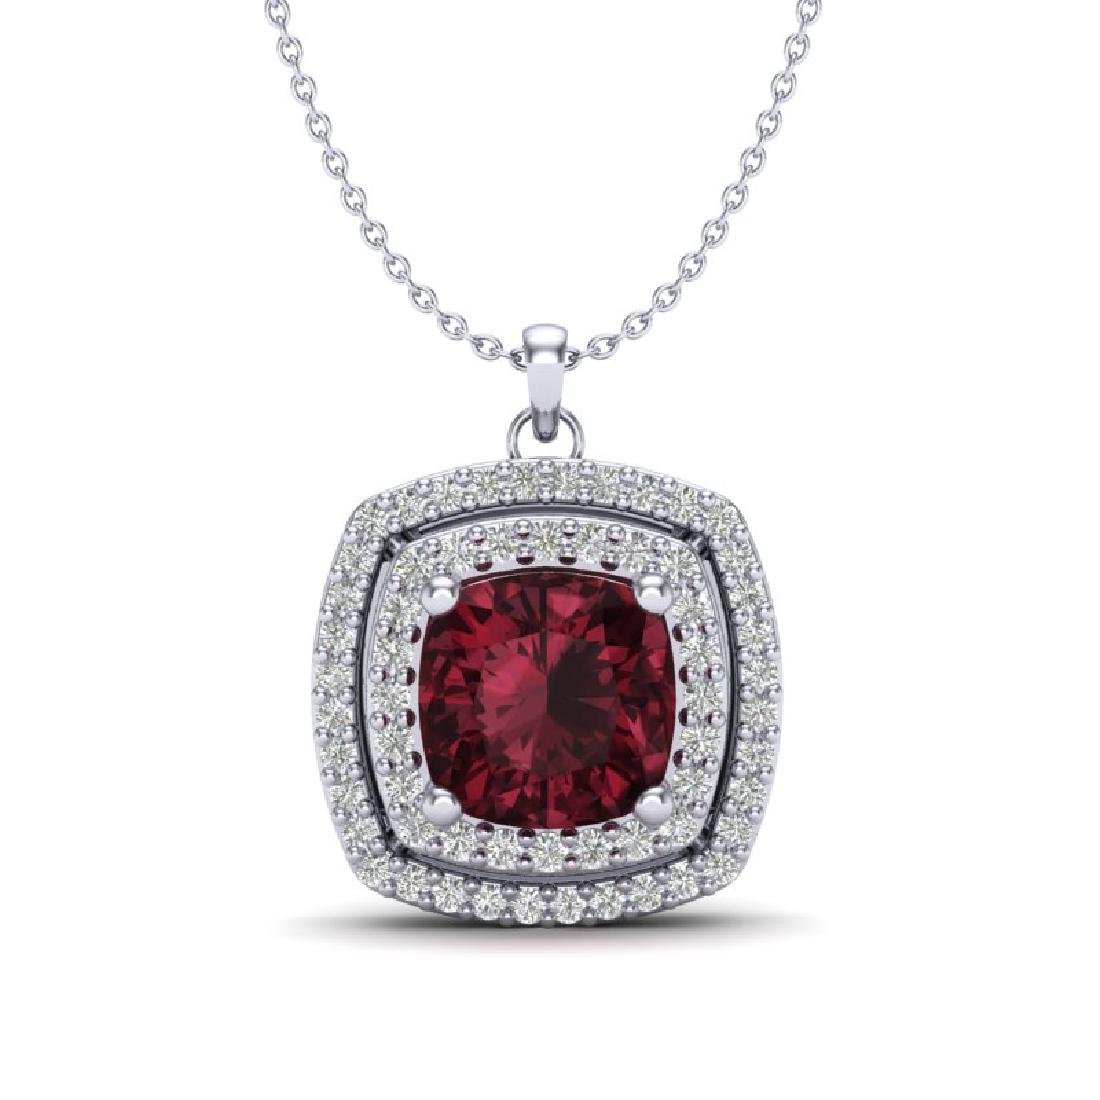 2.27 CTW Garnet & Micro Pave VS/SI Diamond Halo